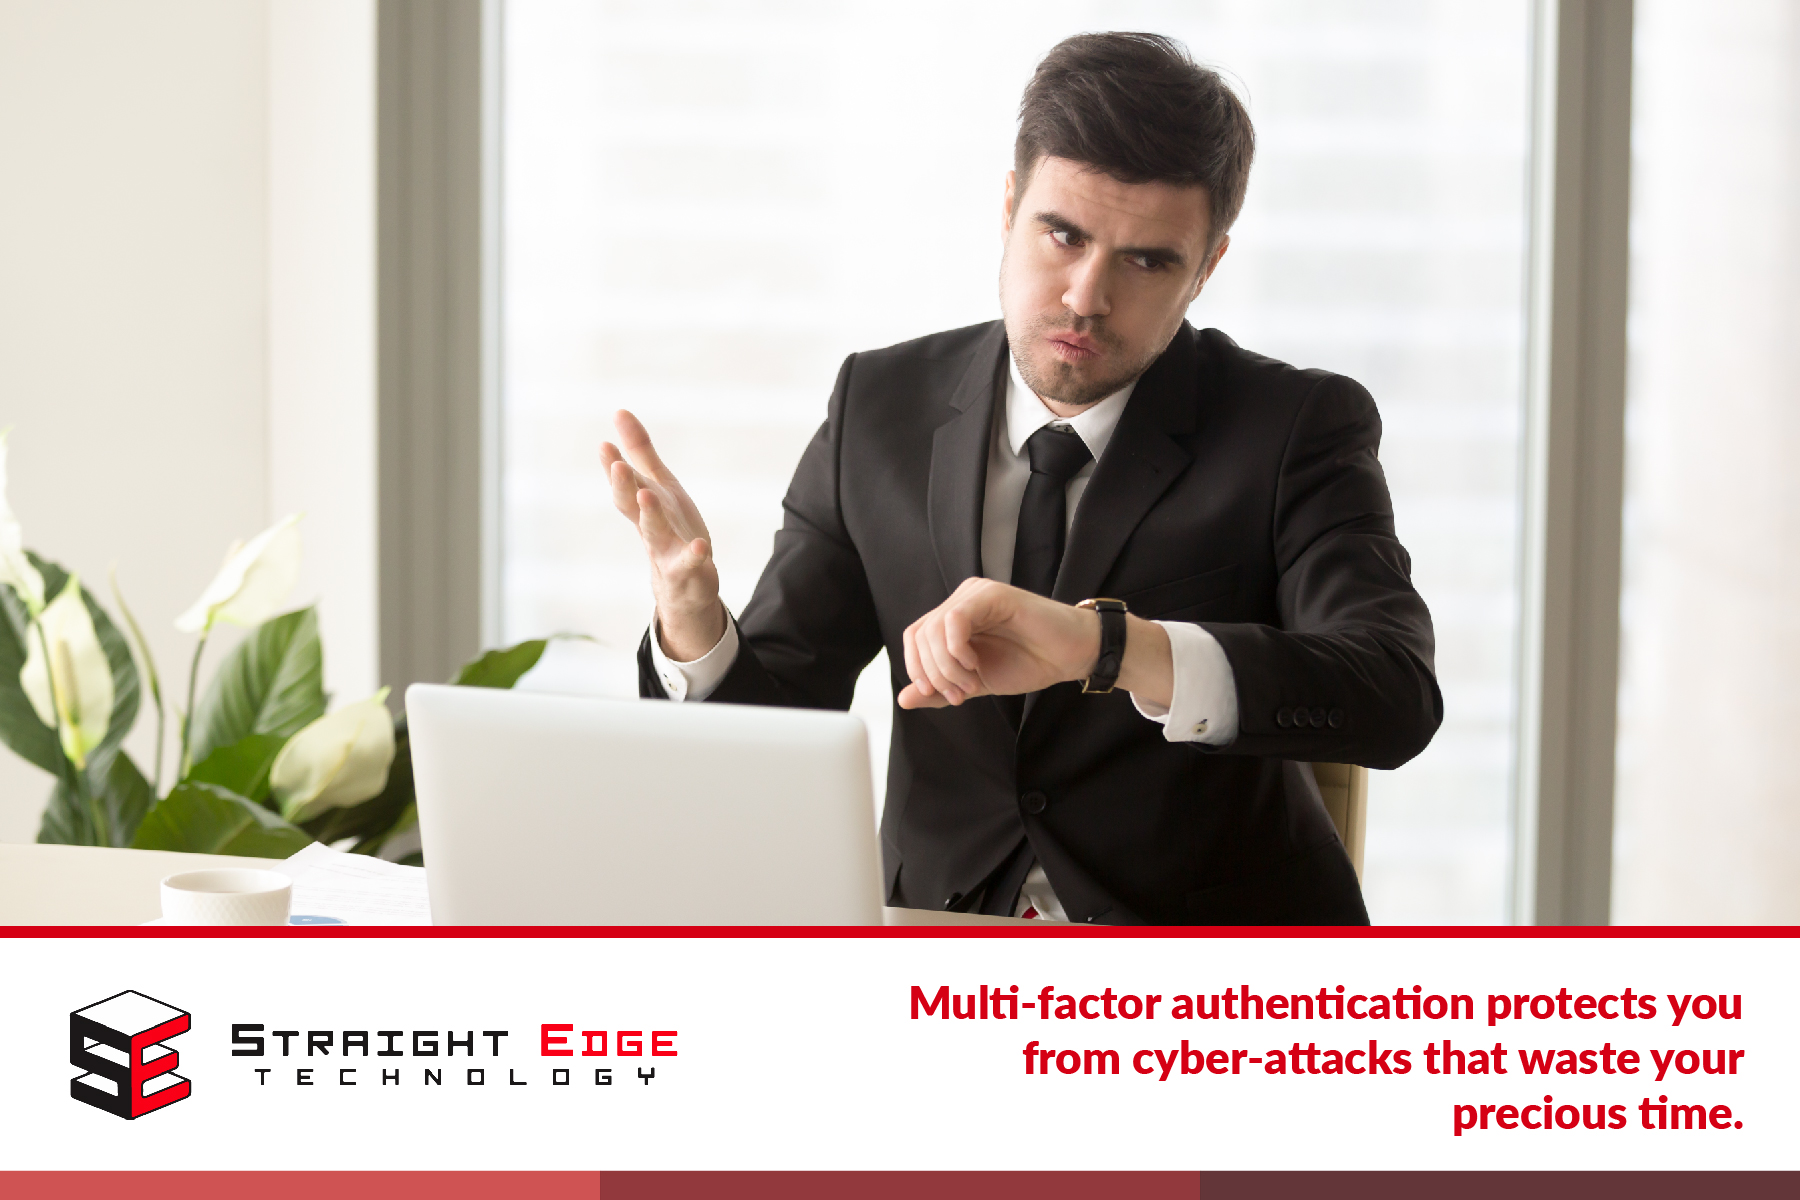 MFA protects you from cyberattacks